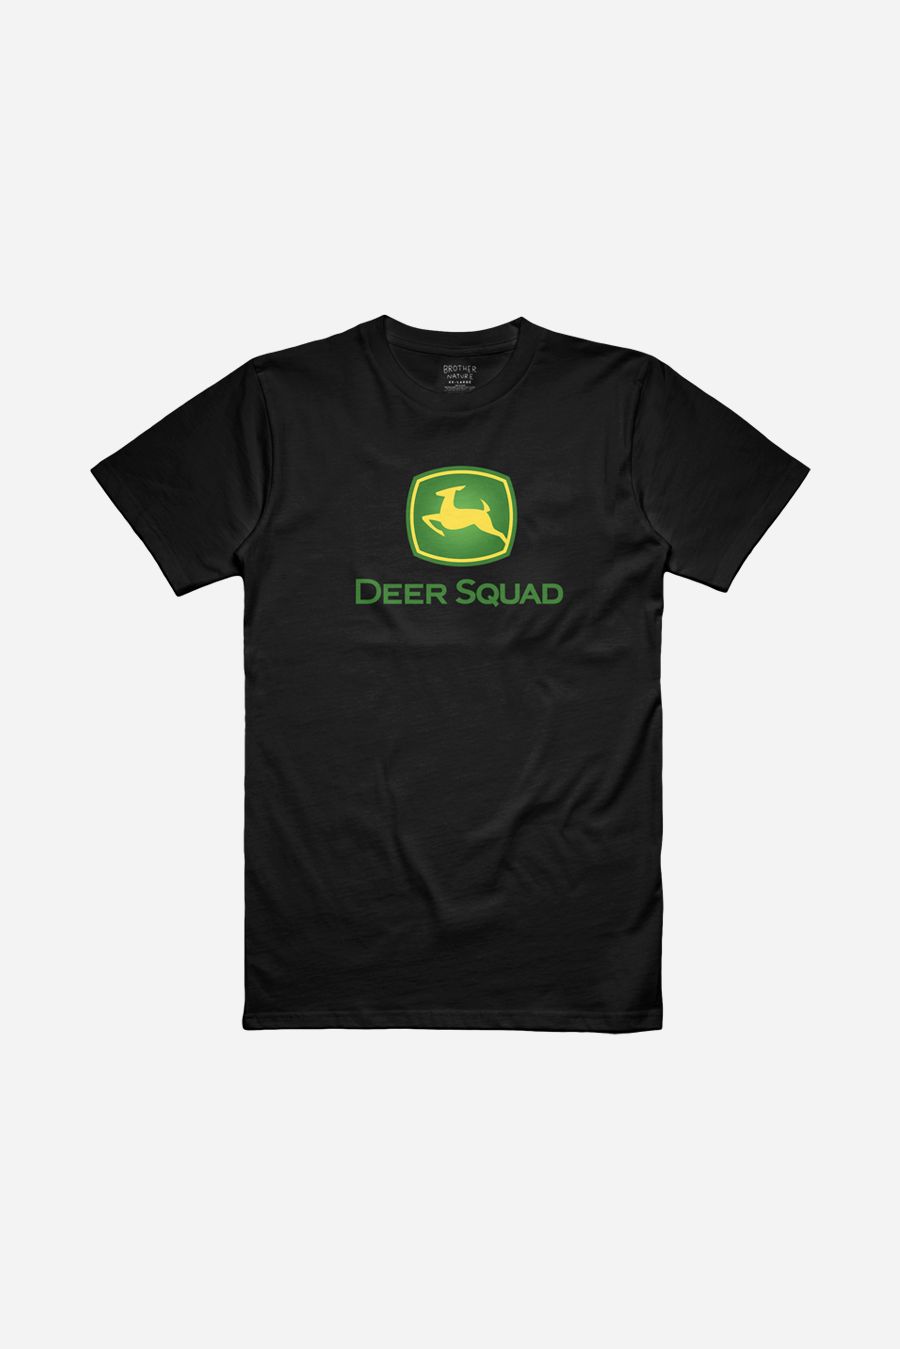 Deer Squad Black Tee